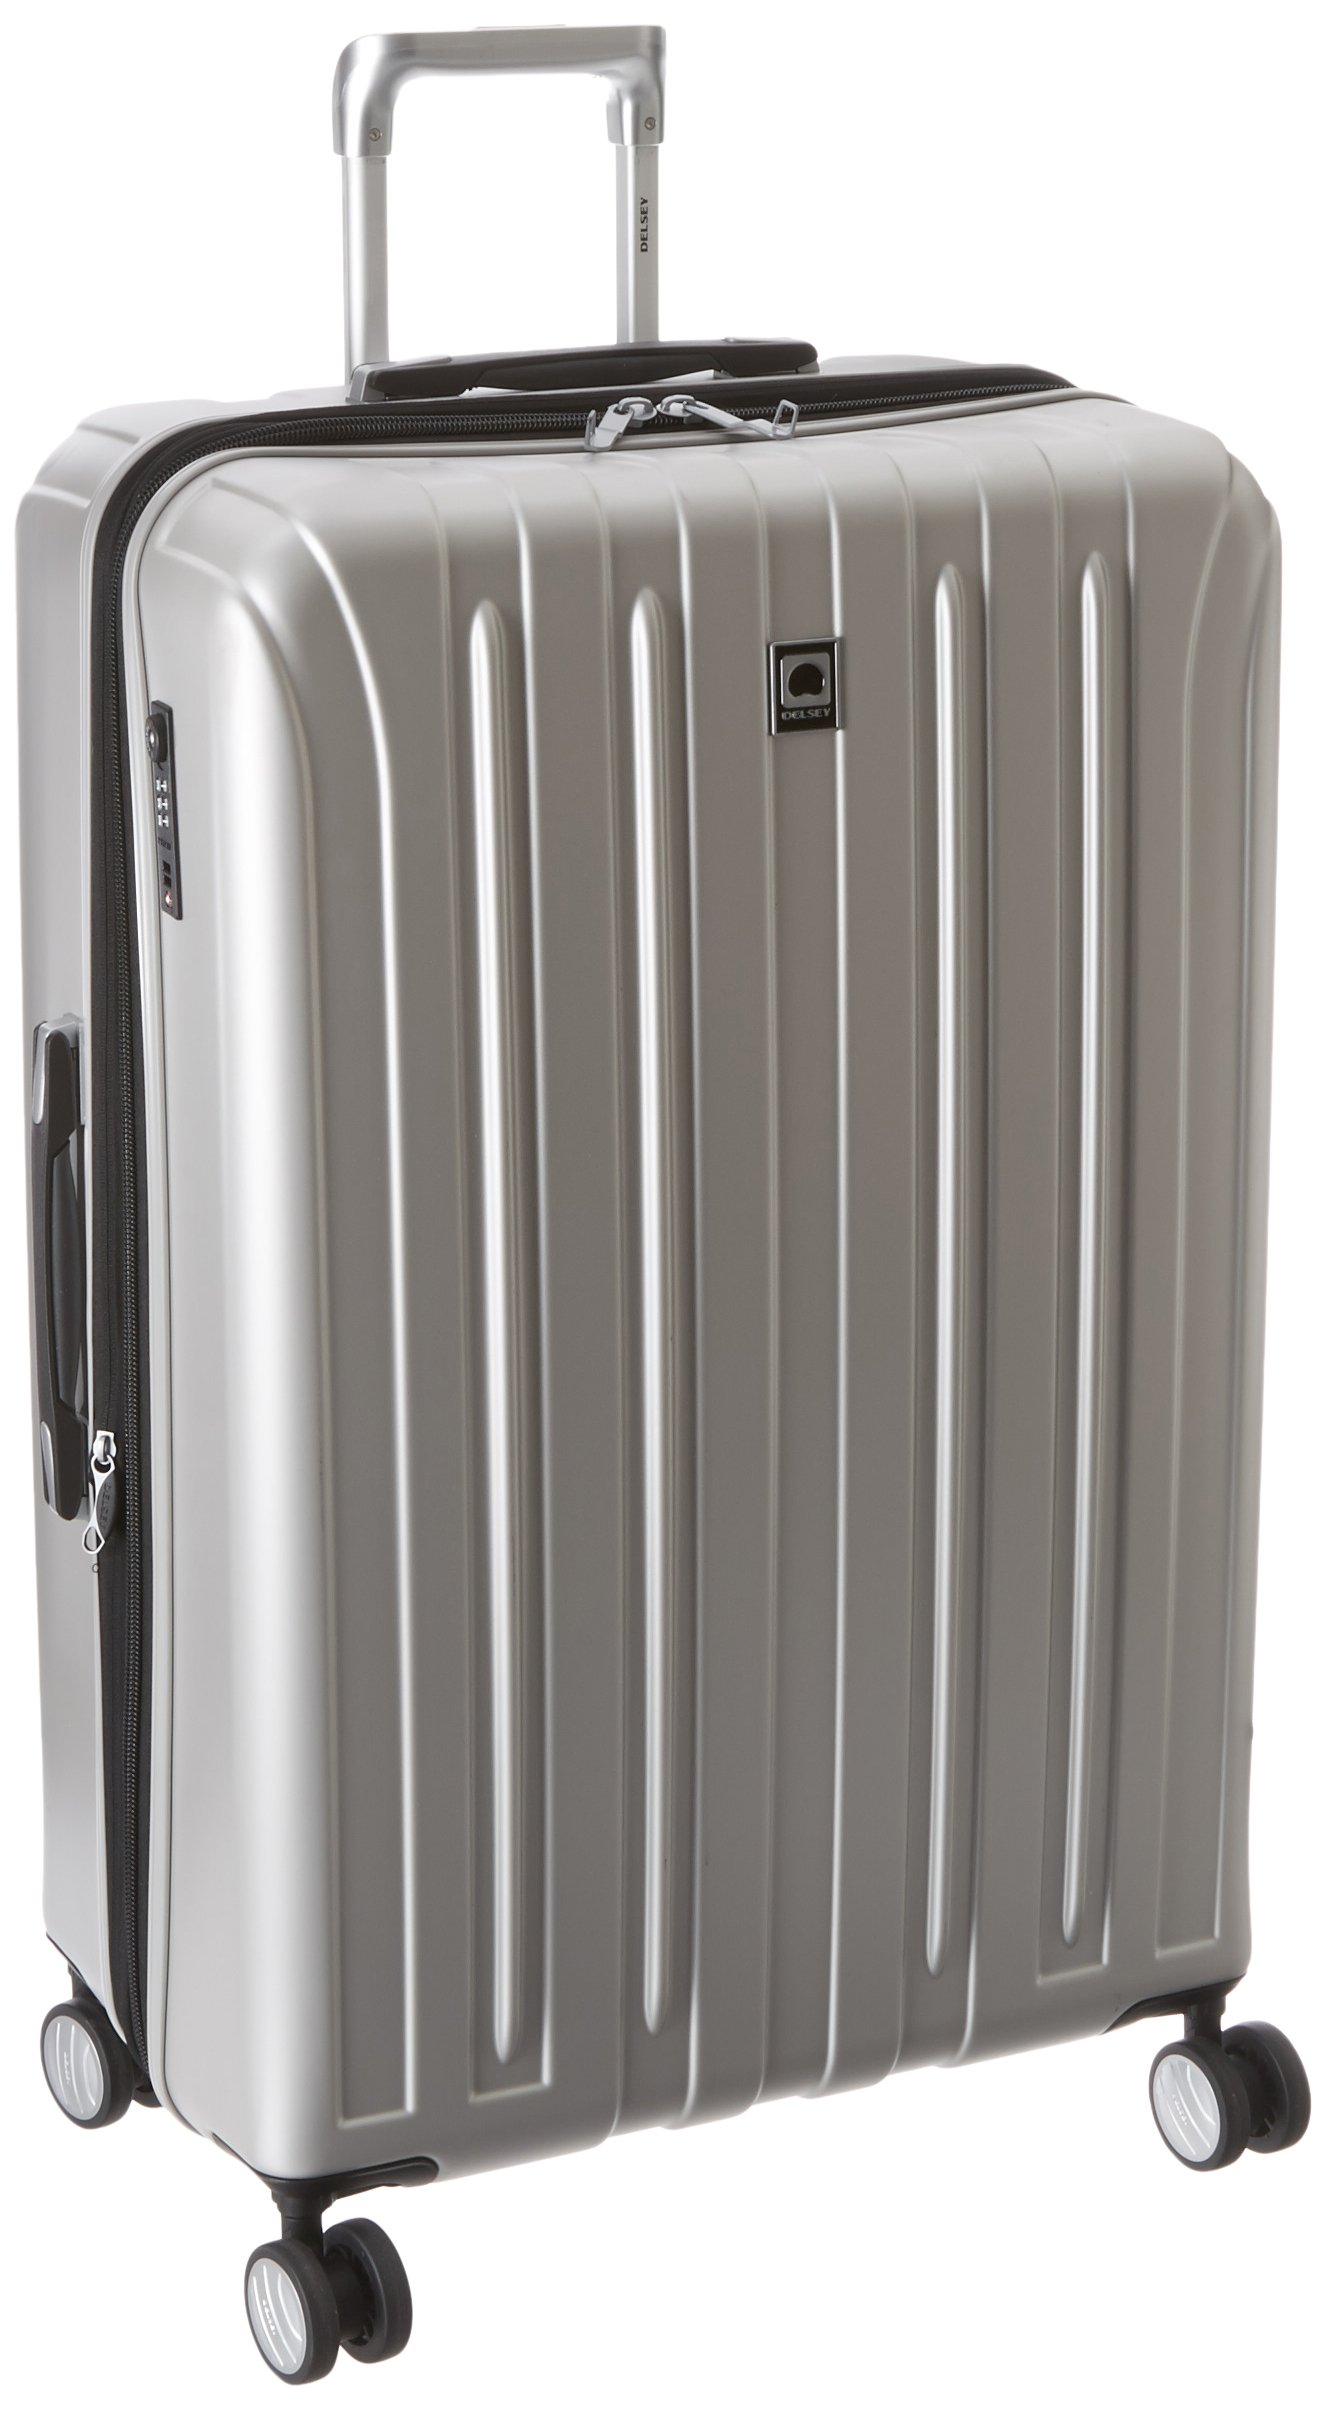 DELSEY Paris Luggage Checked-Large Hard Case Spinner Suitcase, Silver, 29 inch by DELSEY Paris